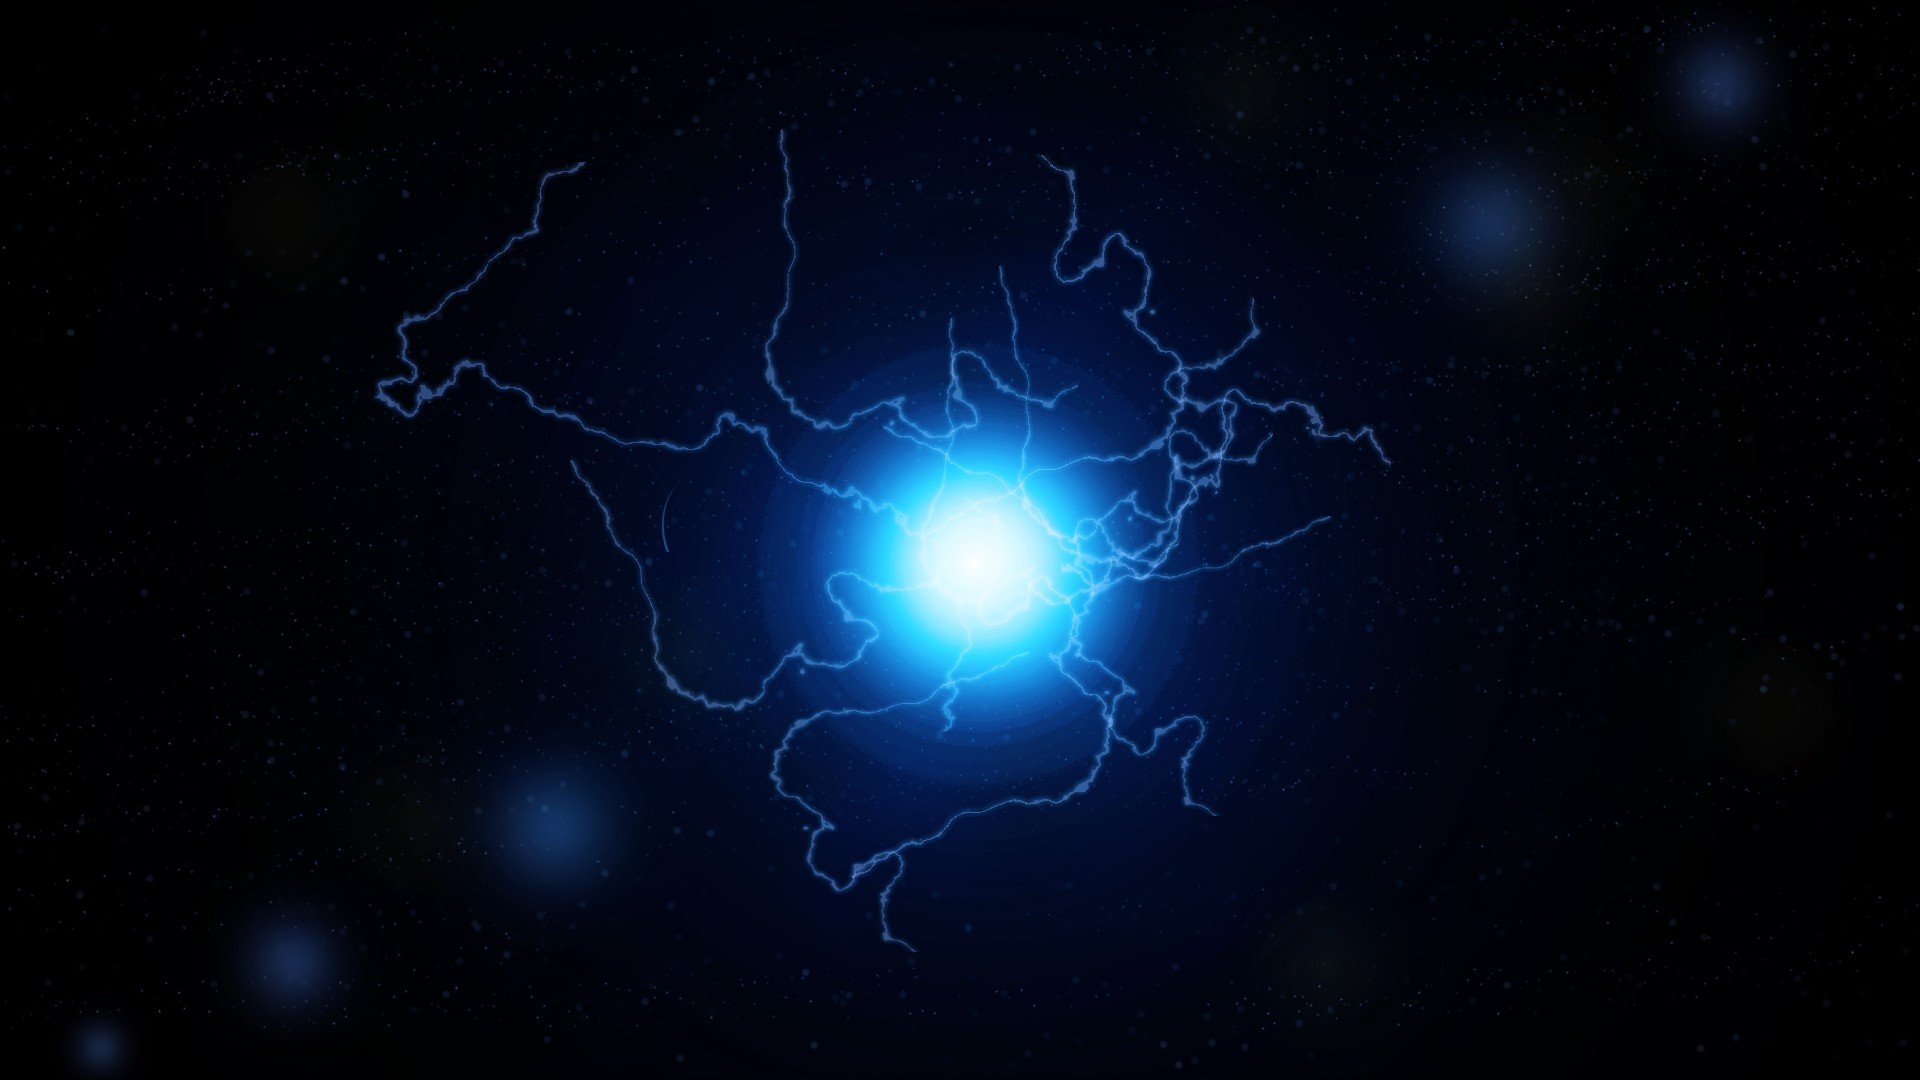 ball lightning wallpapers high quality download free